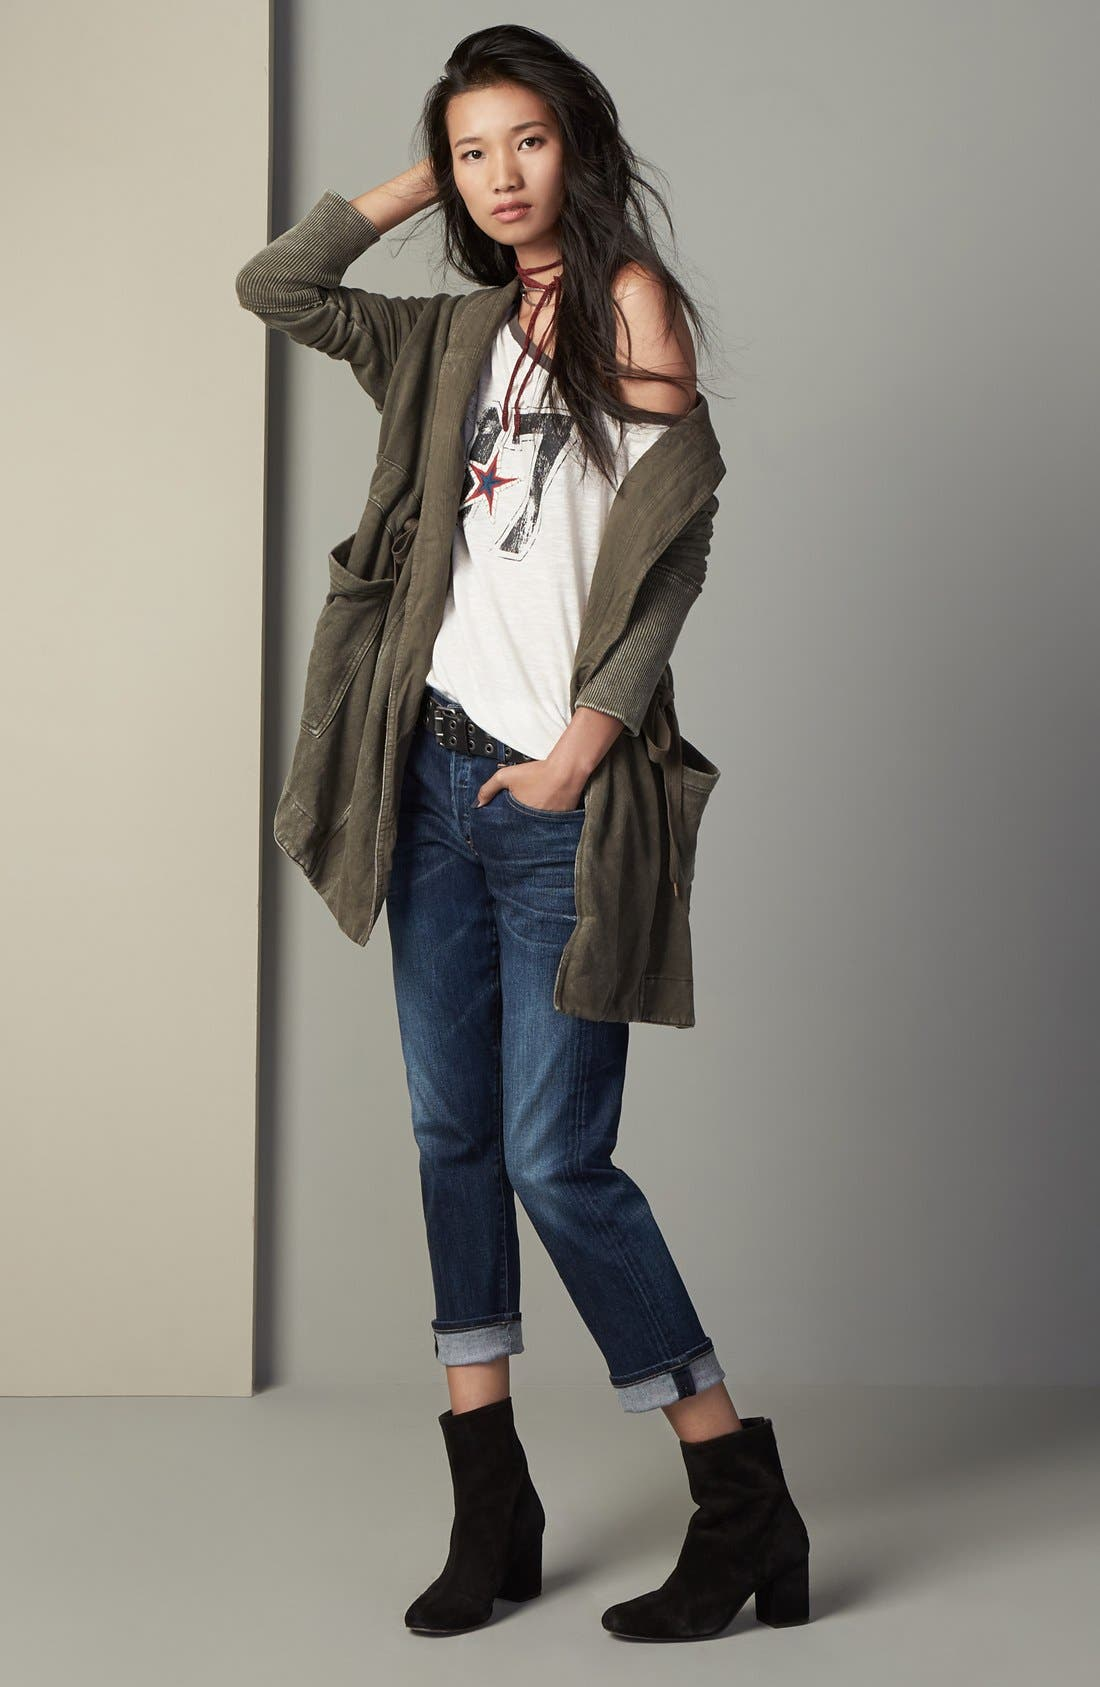 Free People Cardigan, Tee & Citizens of Humanity Jeans Outfit with Accessories